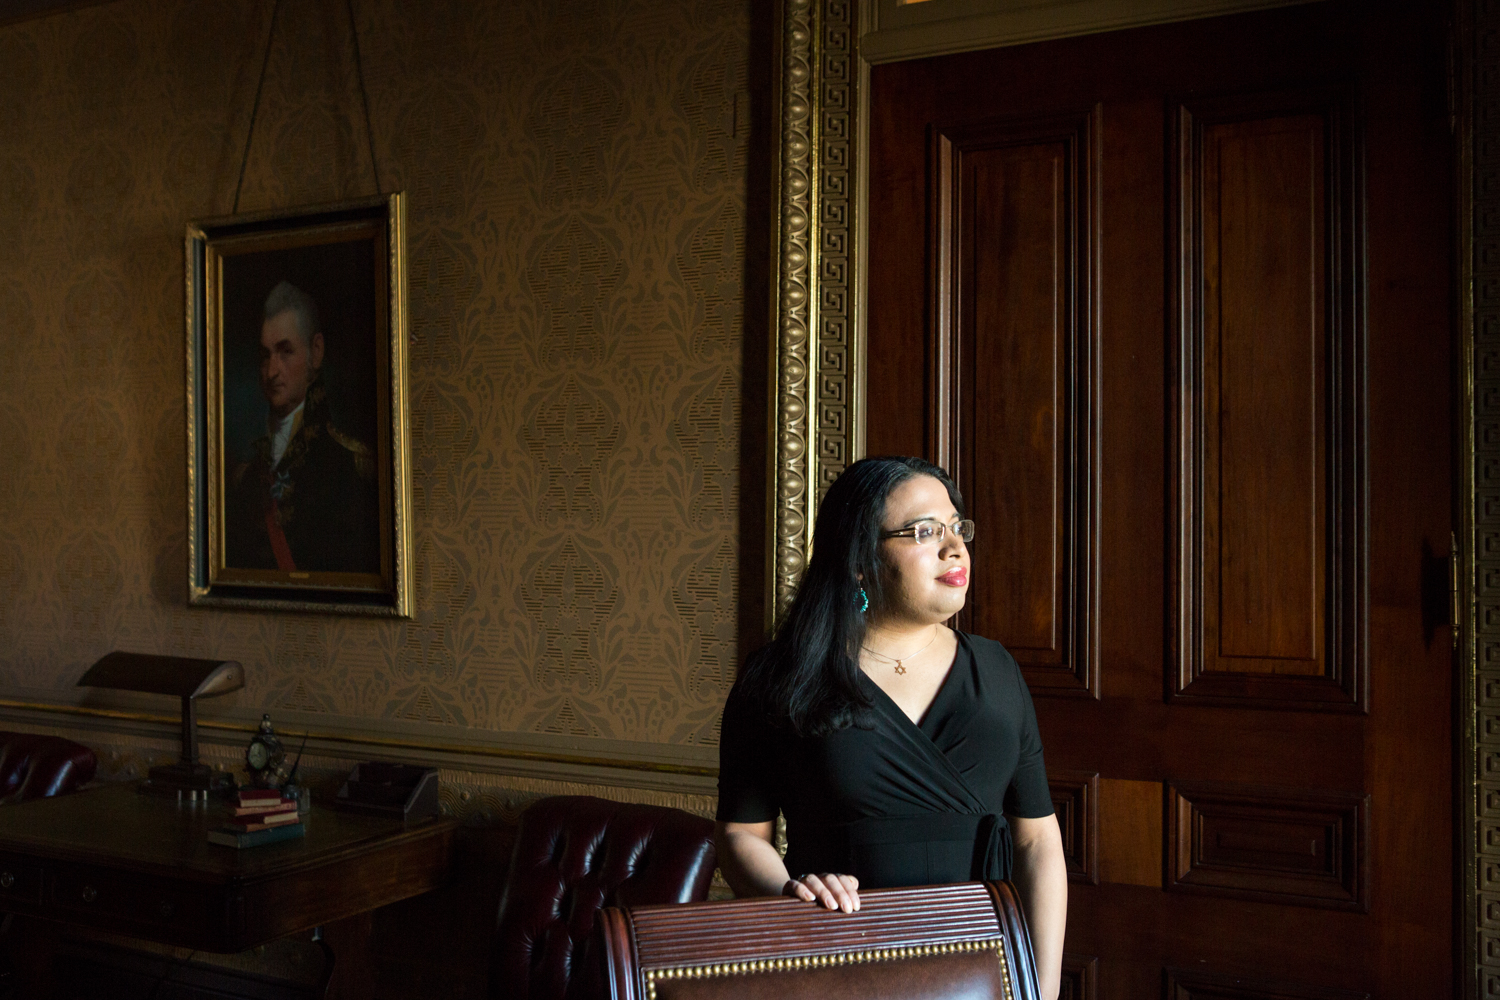 On January 6, 2017, Raffi Freedman-Gurspan poses for a portrait in a War Room Suite of the Executive Office Building in Washington, D.C. Raffi worked under President Obama as The White House's primary LGBT liaison.